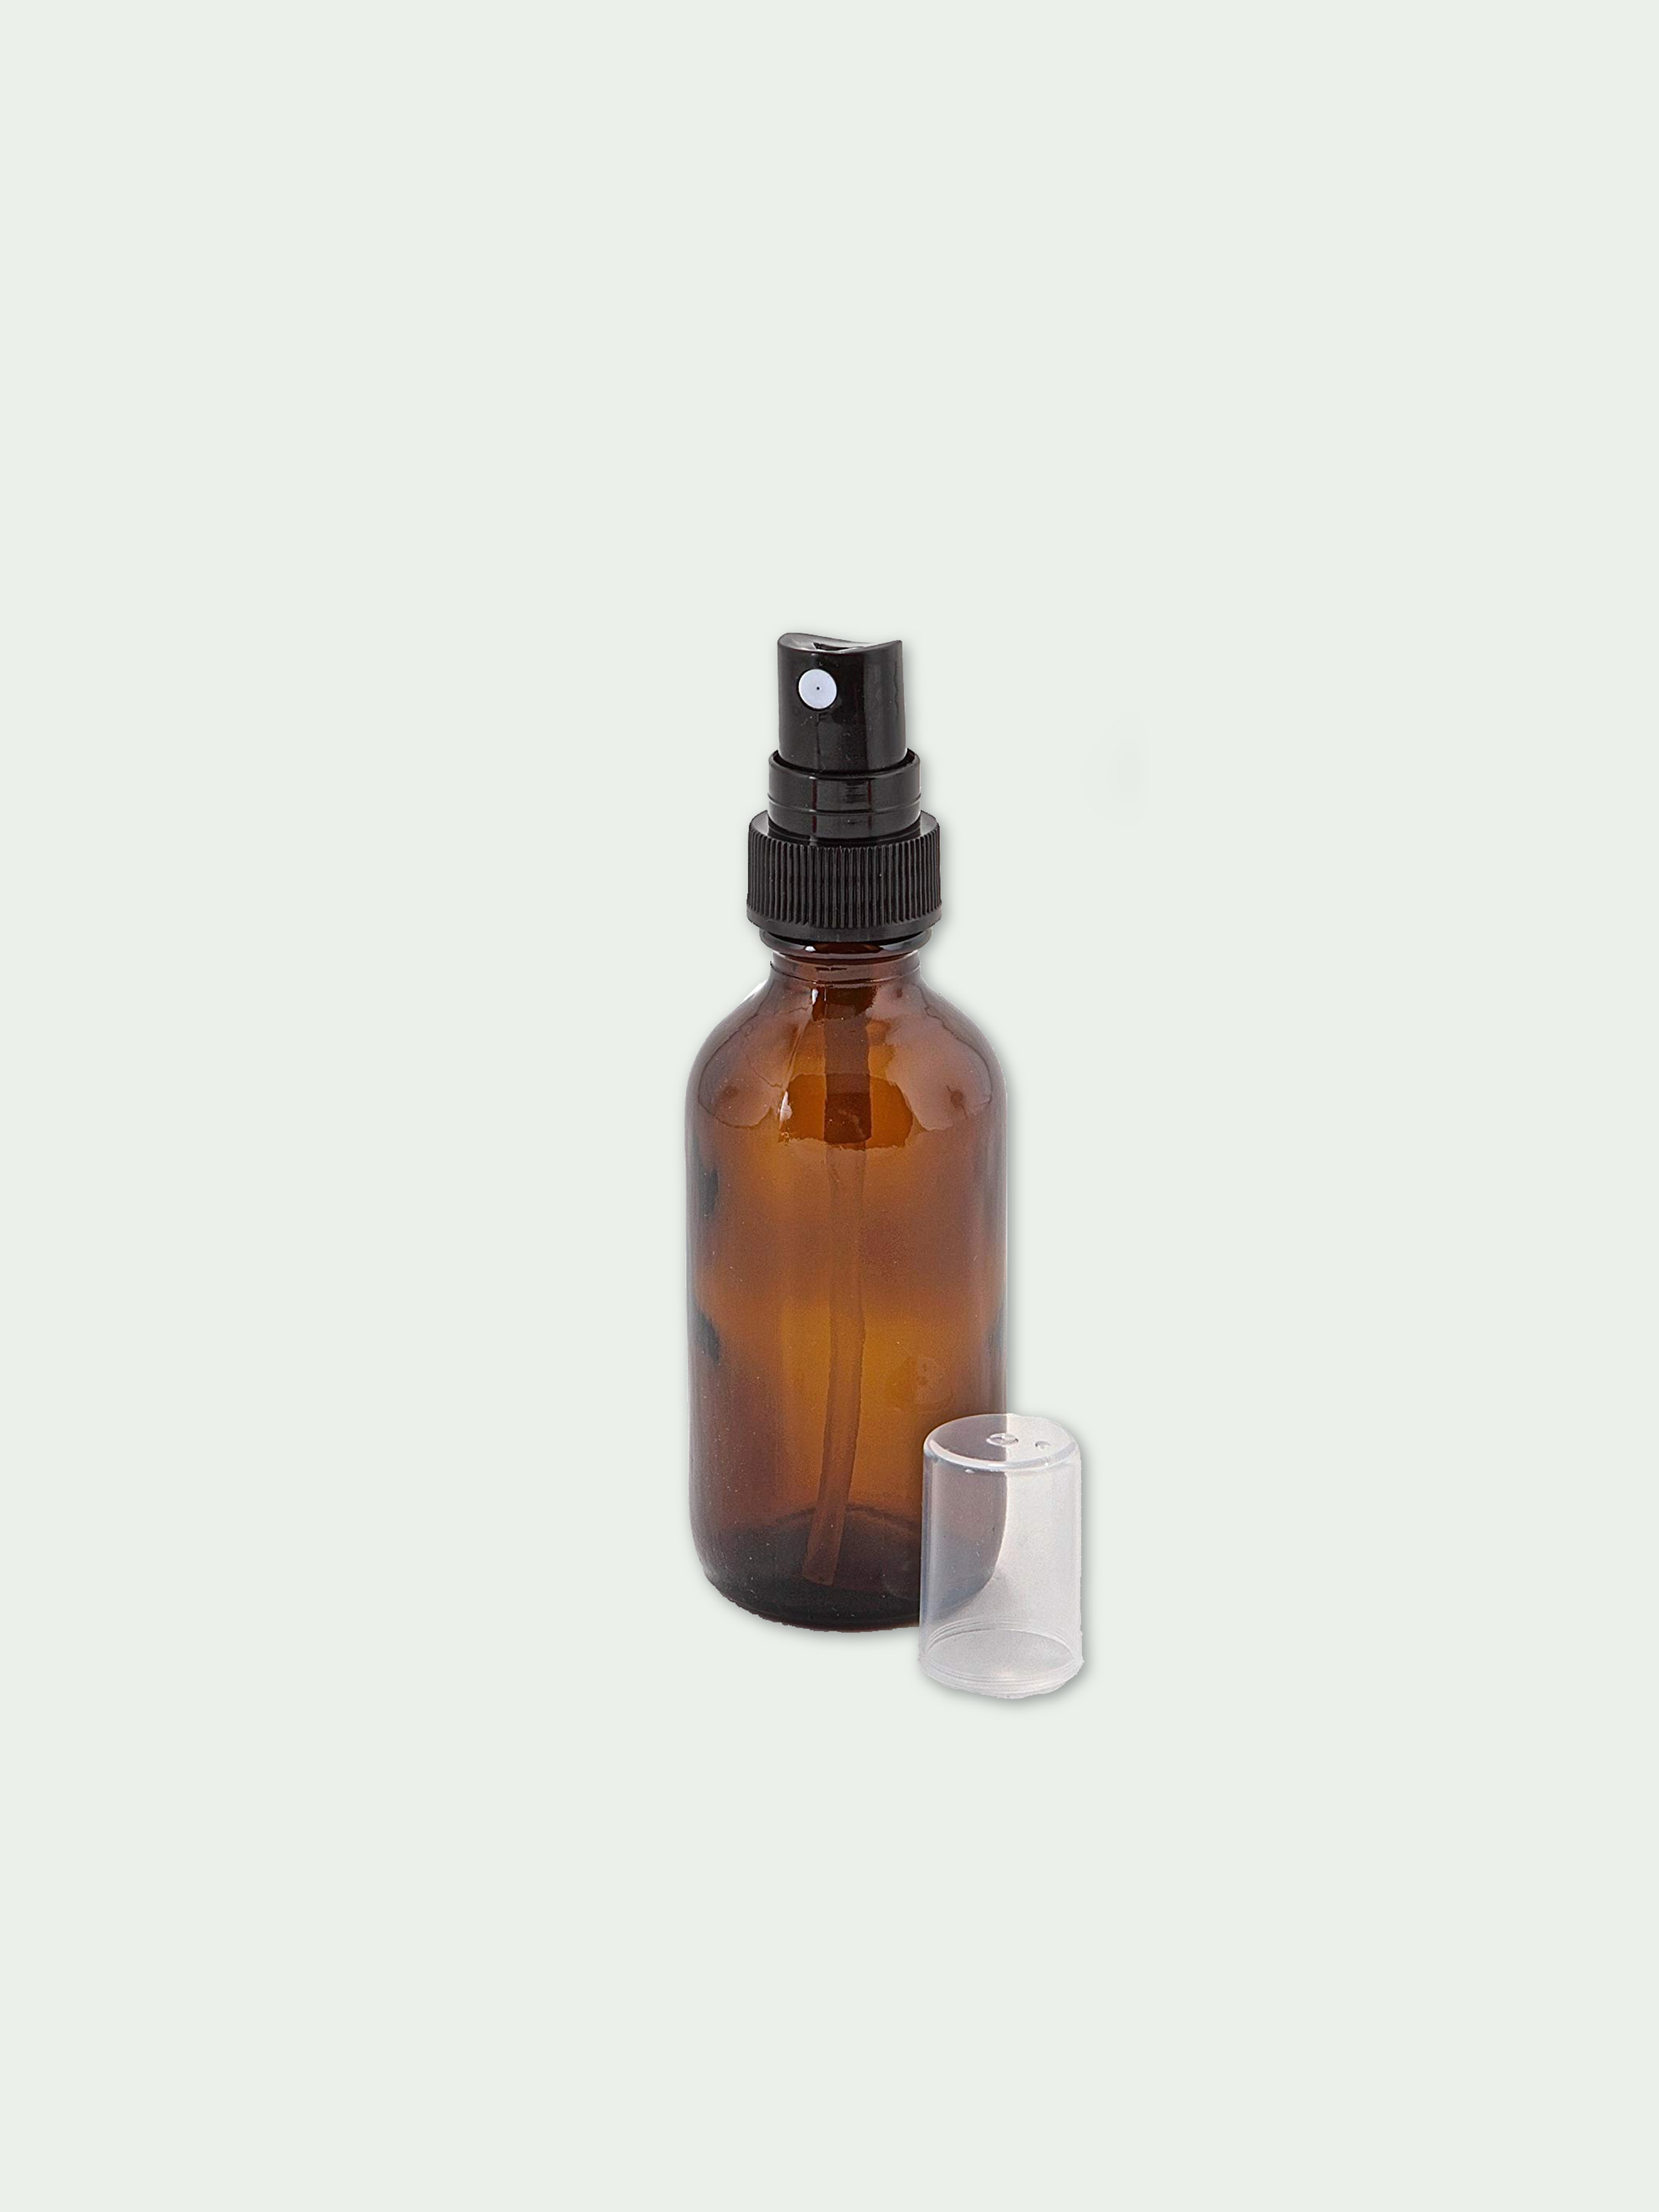 2 oz Fine Mist Sprayers (12 Pack) - This 2 oz glass spray bottle is perfect for homemade sprays. I make mine with distilled water and essential oils (I'll be writing a blog post on this soon). I use mine for homemade mosquito repellent, toners, pillow & linen spray and bathroom spray (think POO-pourri). I made essential oil mosquito repellent for a medical mission trip in the Philippines and carried my spray bottle in my little travel backpack. My friends and I didn't get any mosquito bites!Get this set of 12 spray bottles and make homemade gifts for friends and family. They will thank you for it!